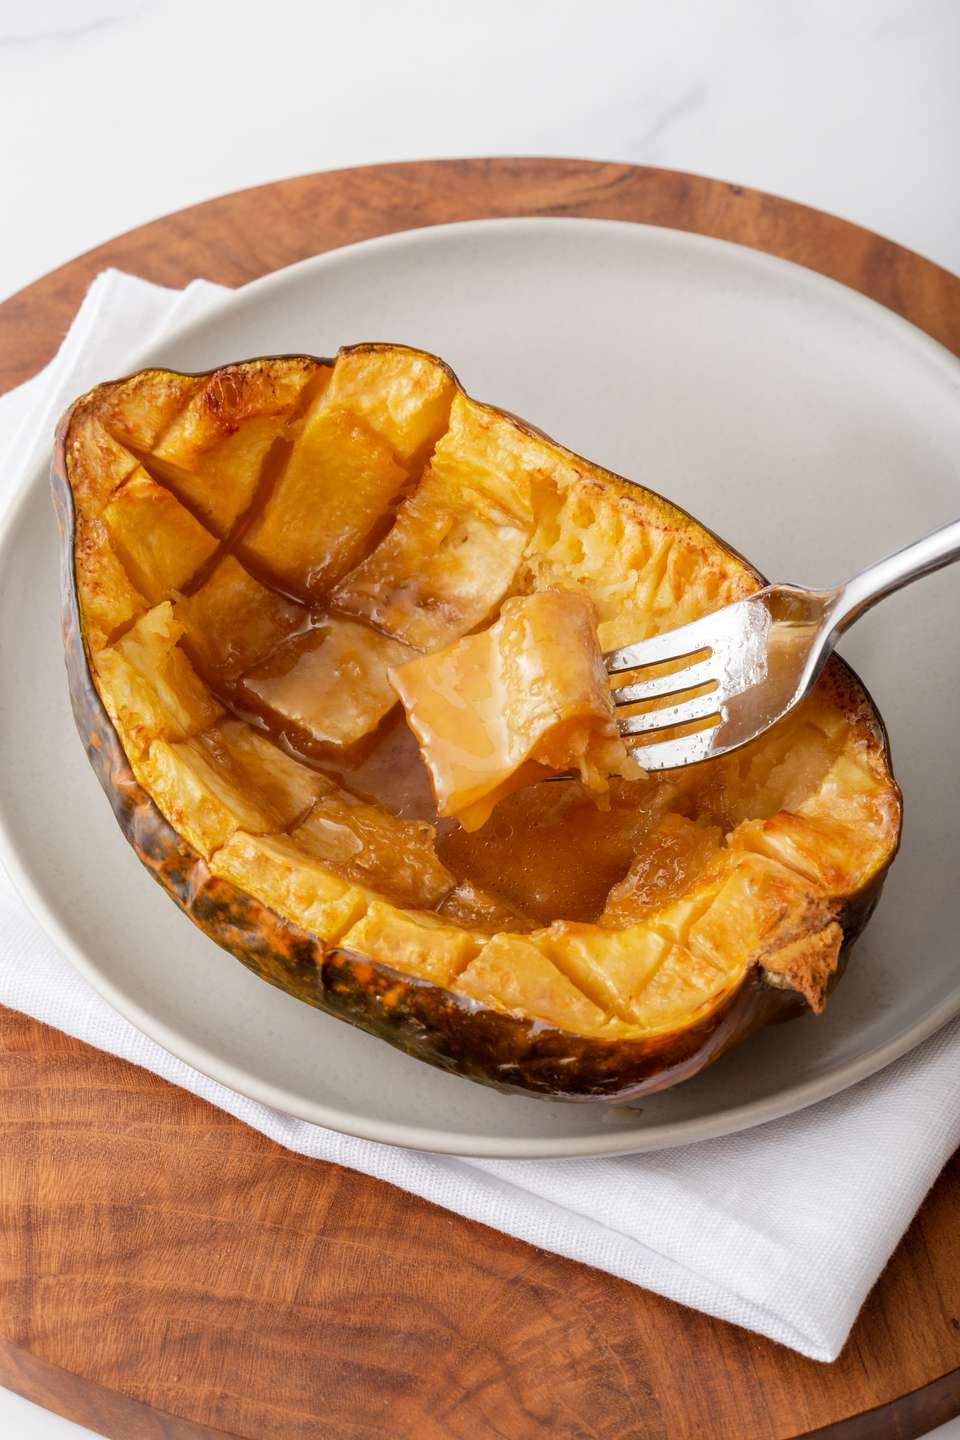 A plate of roasted squash with a fork taking a piece.